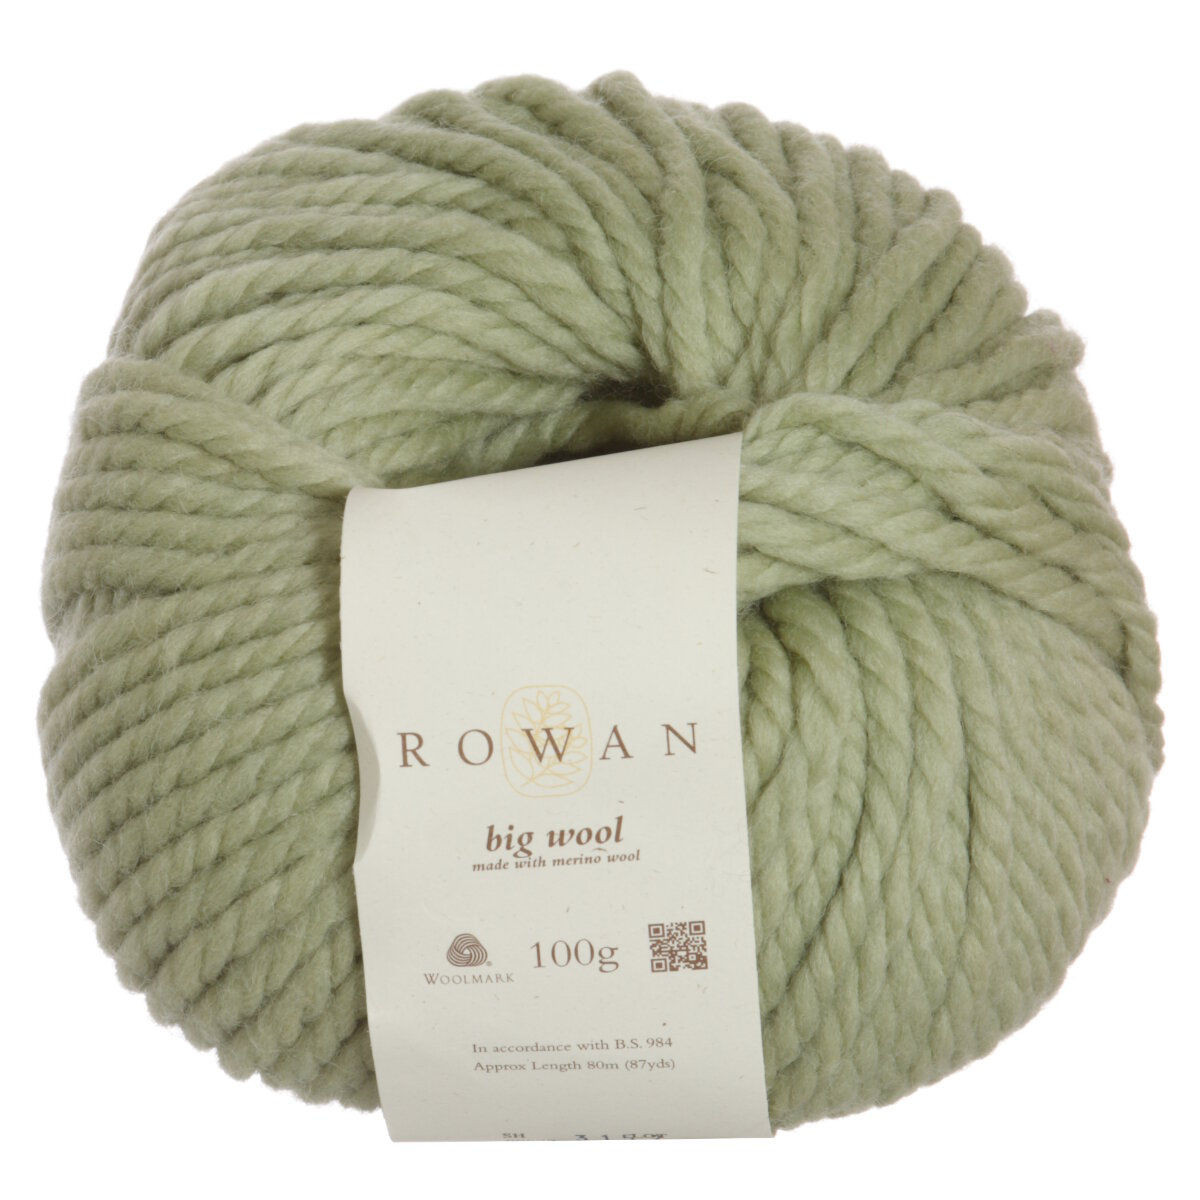 Big Wool Yarn Elegant Rowan Big Wool Yarn 70 Deer Discontinued at Jimmy Of Gorgeous 44 Images Big Wool Yarn